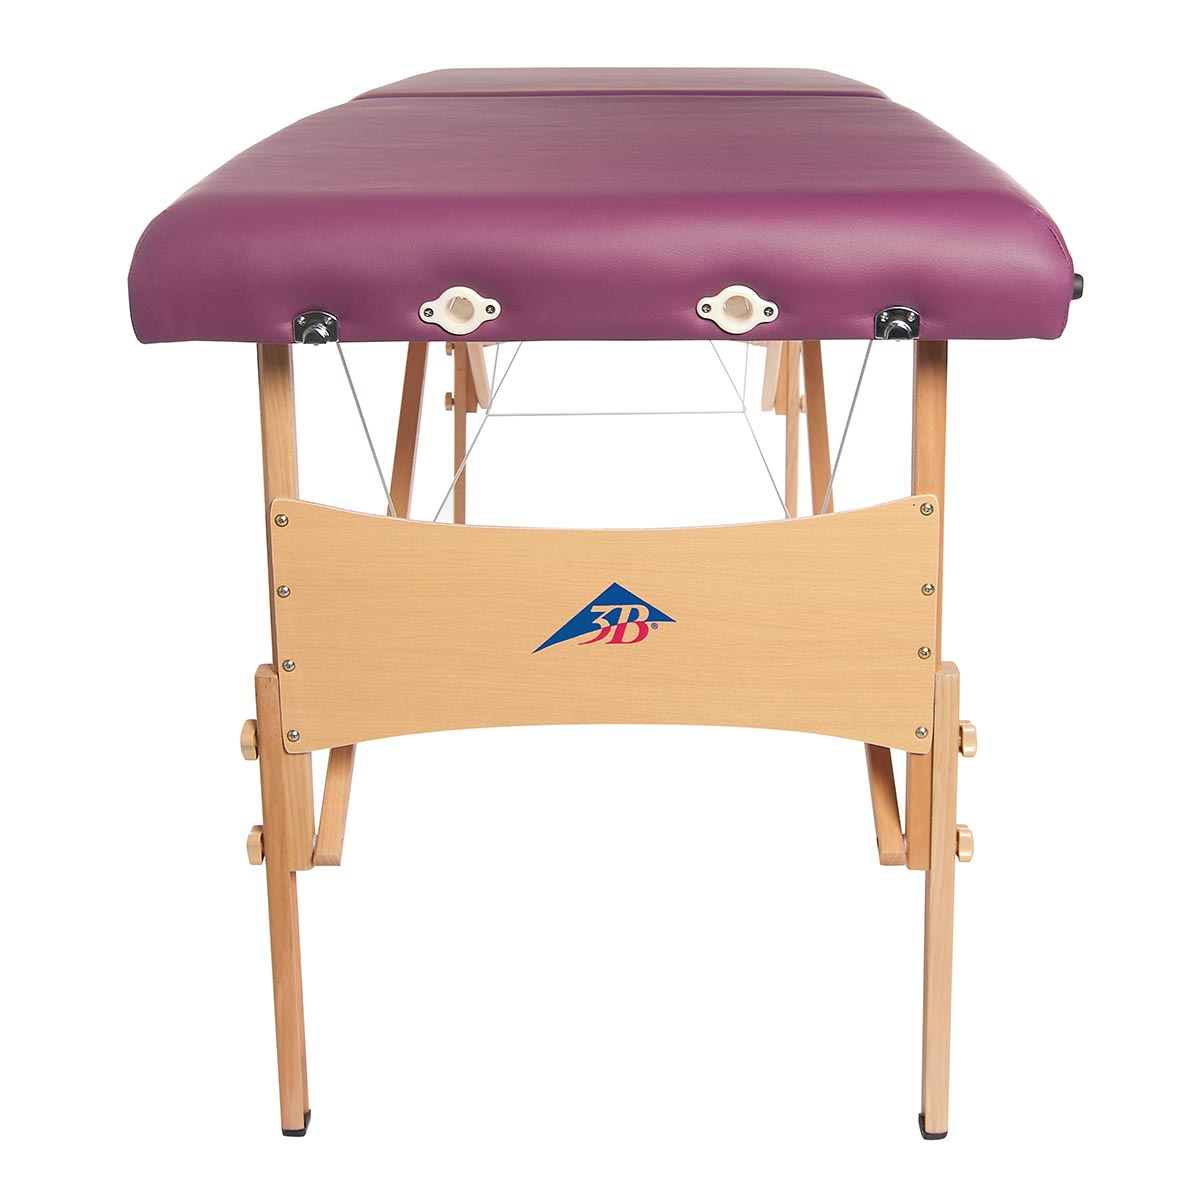 Portable Massage Table Massage Tables Massage Furniture